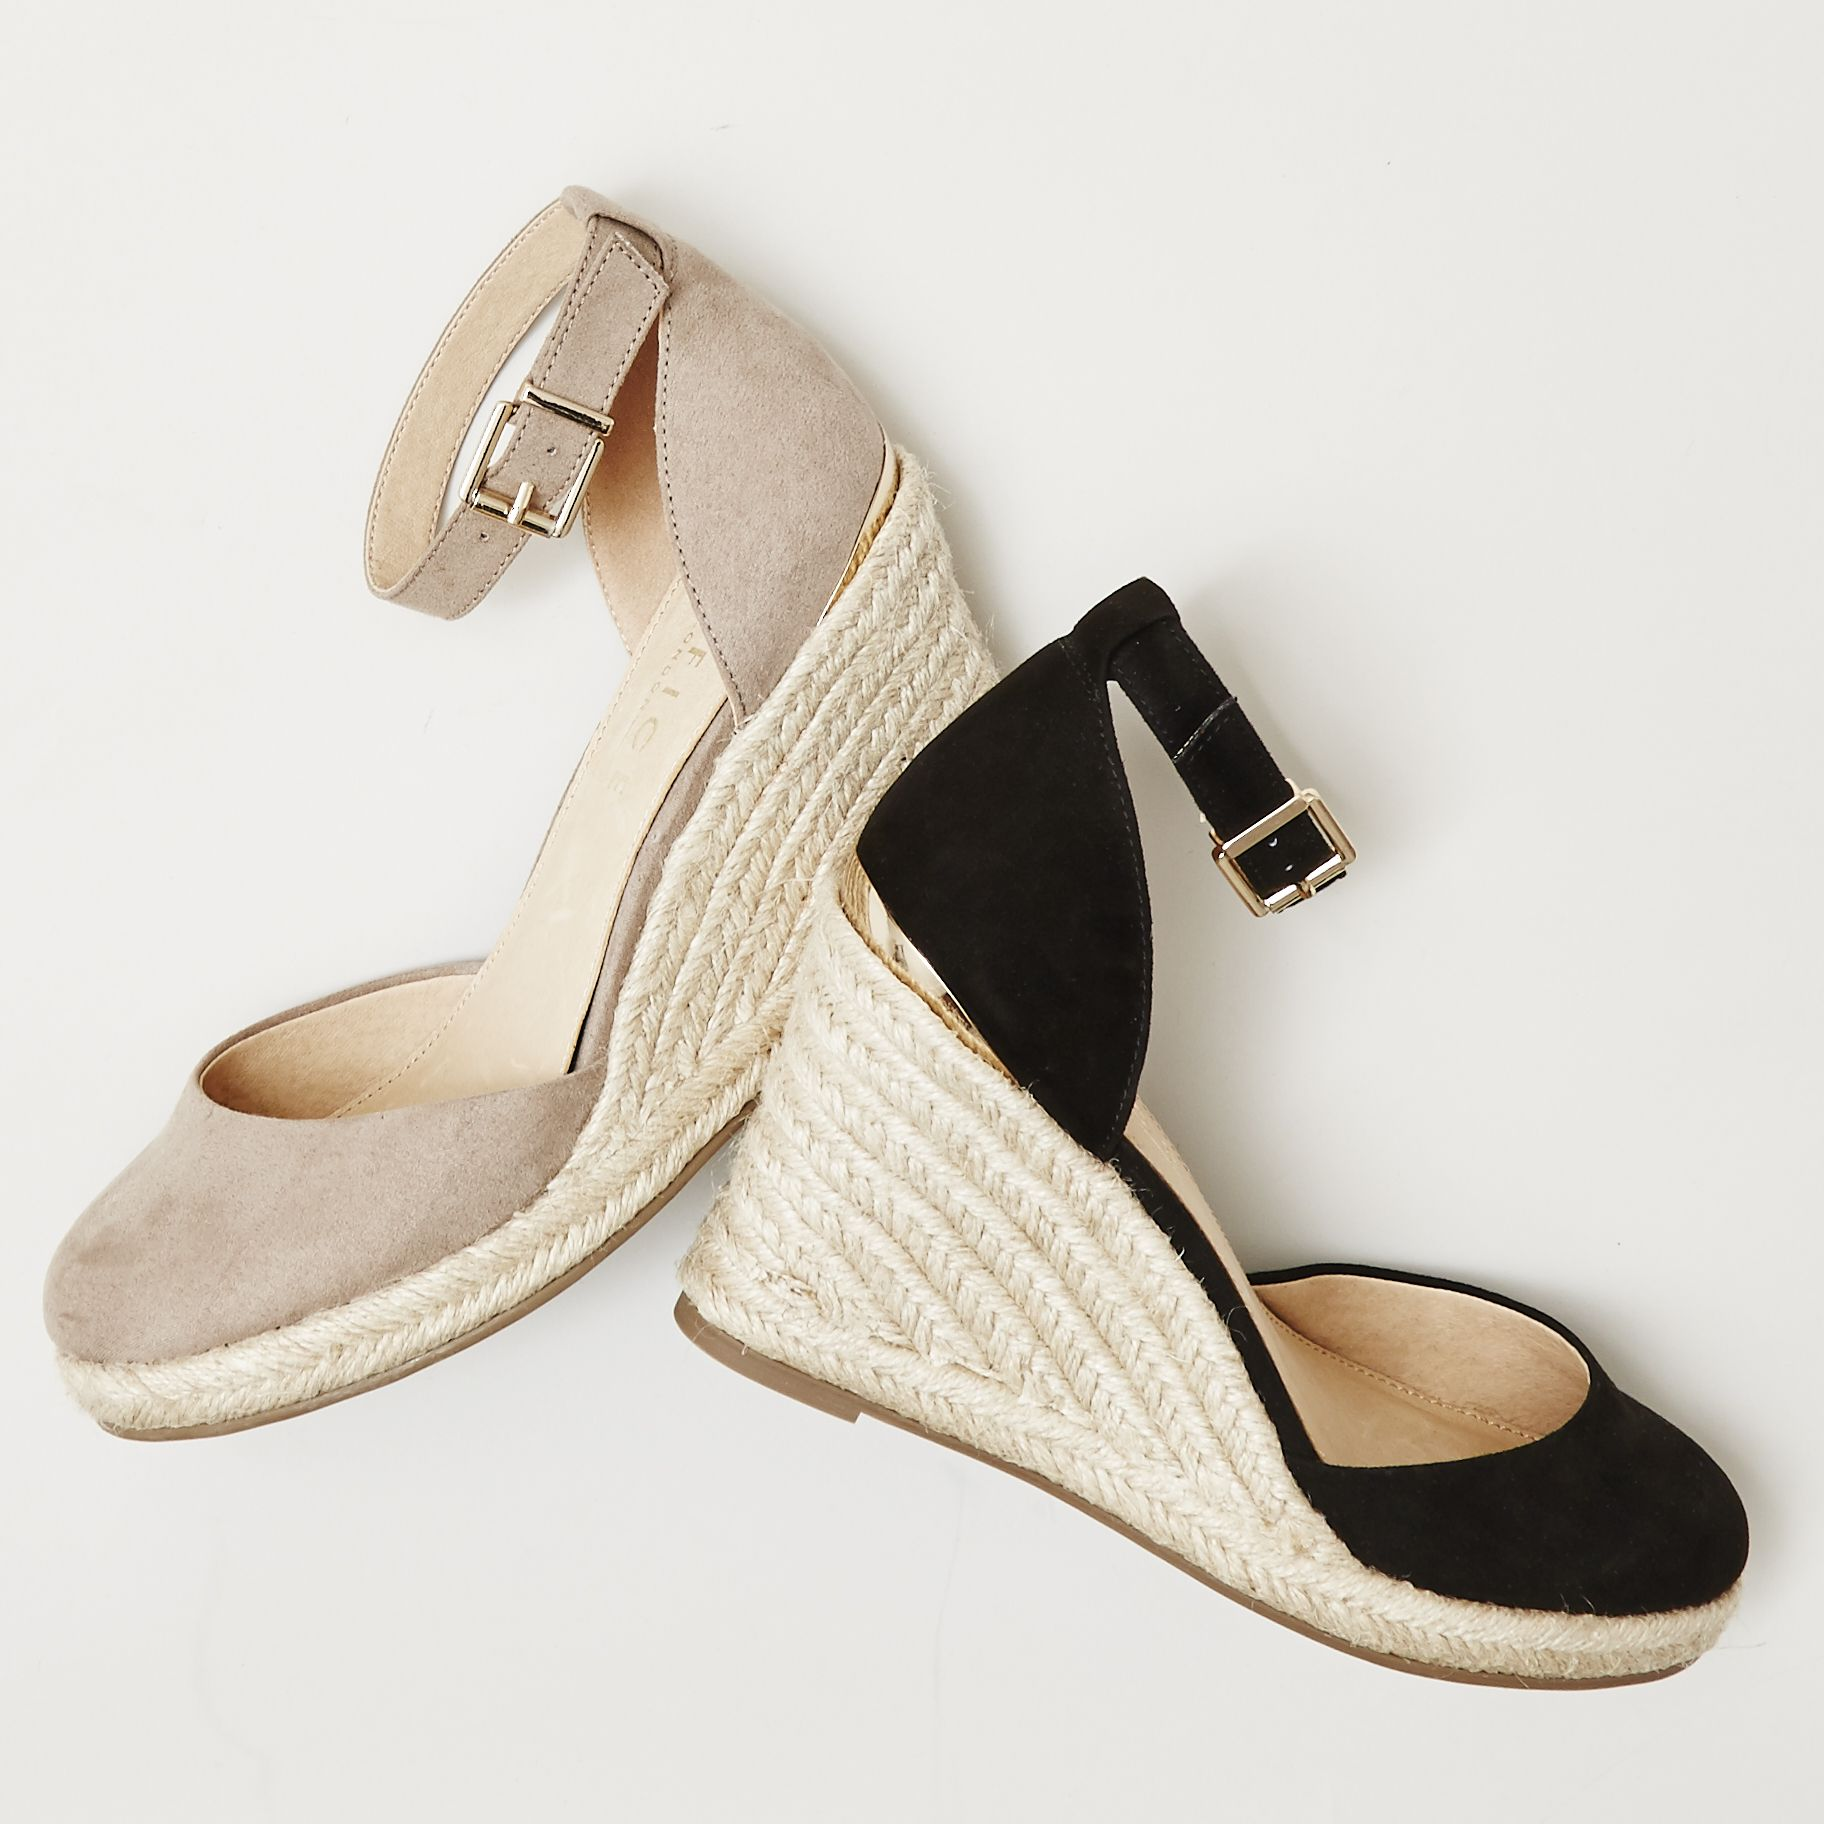 9f789305b6e The wedges that are giving us all the right type of Summer feels ...